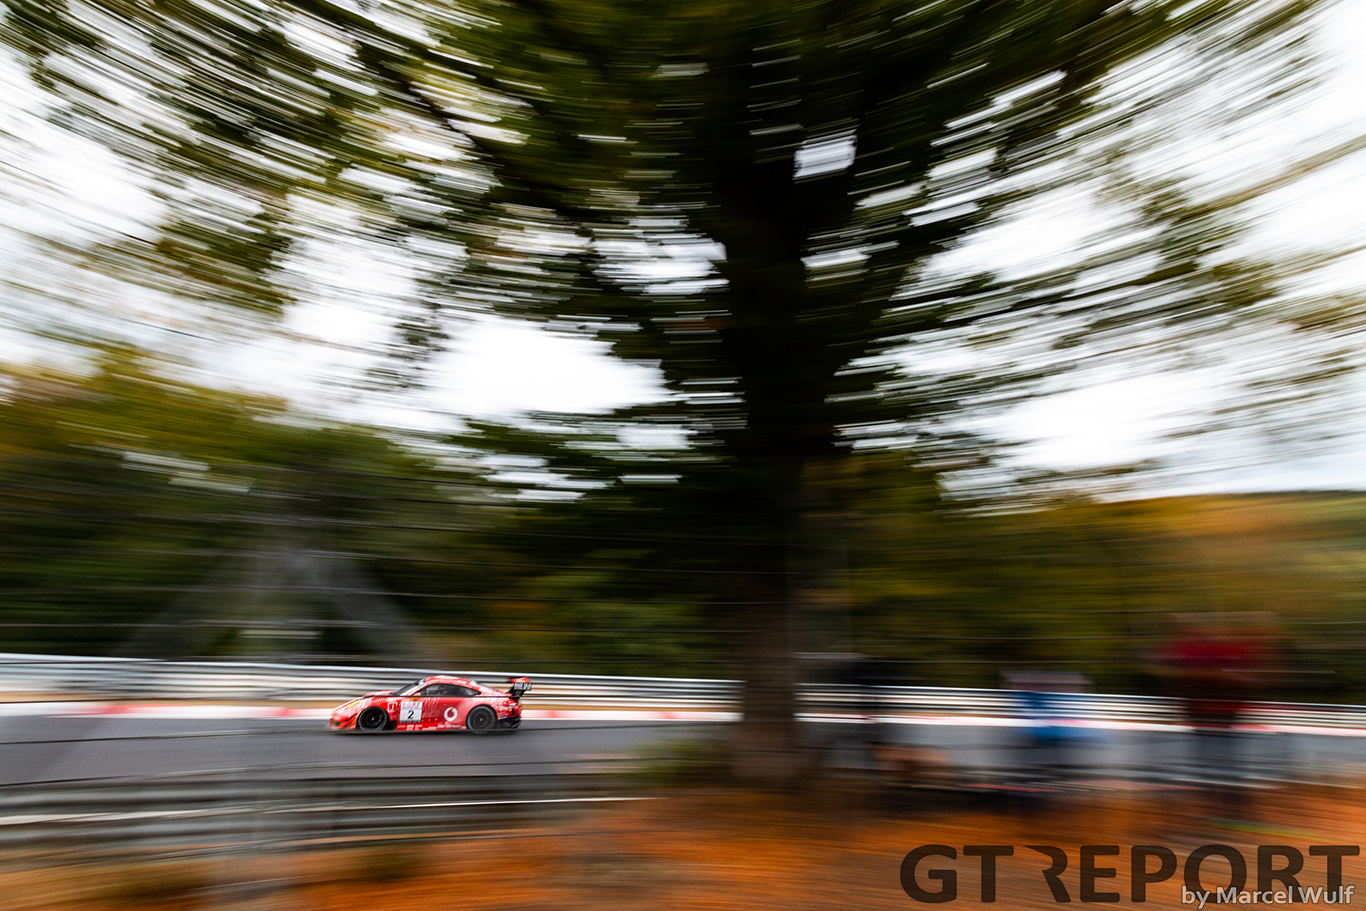 VLN7 gallery: The distance, Pt.II